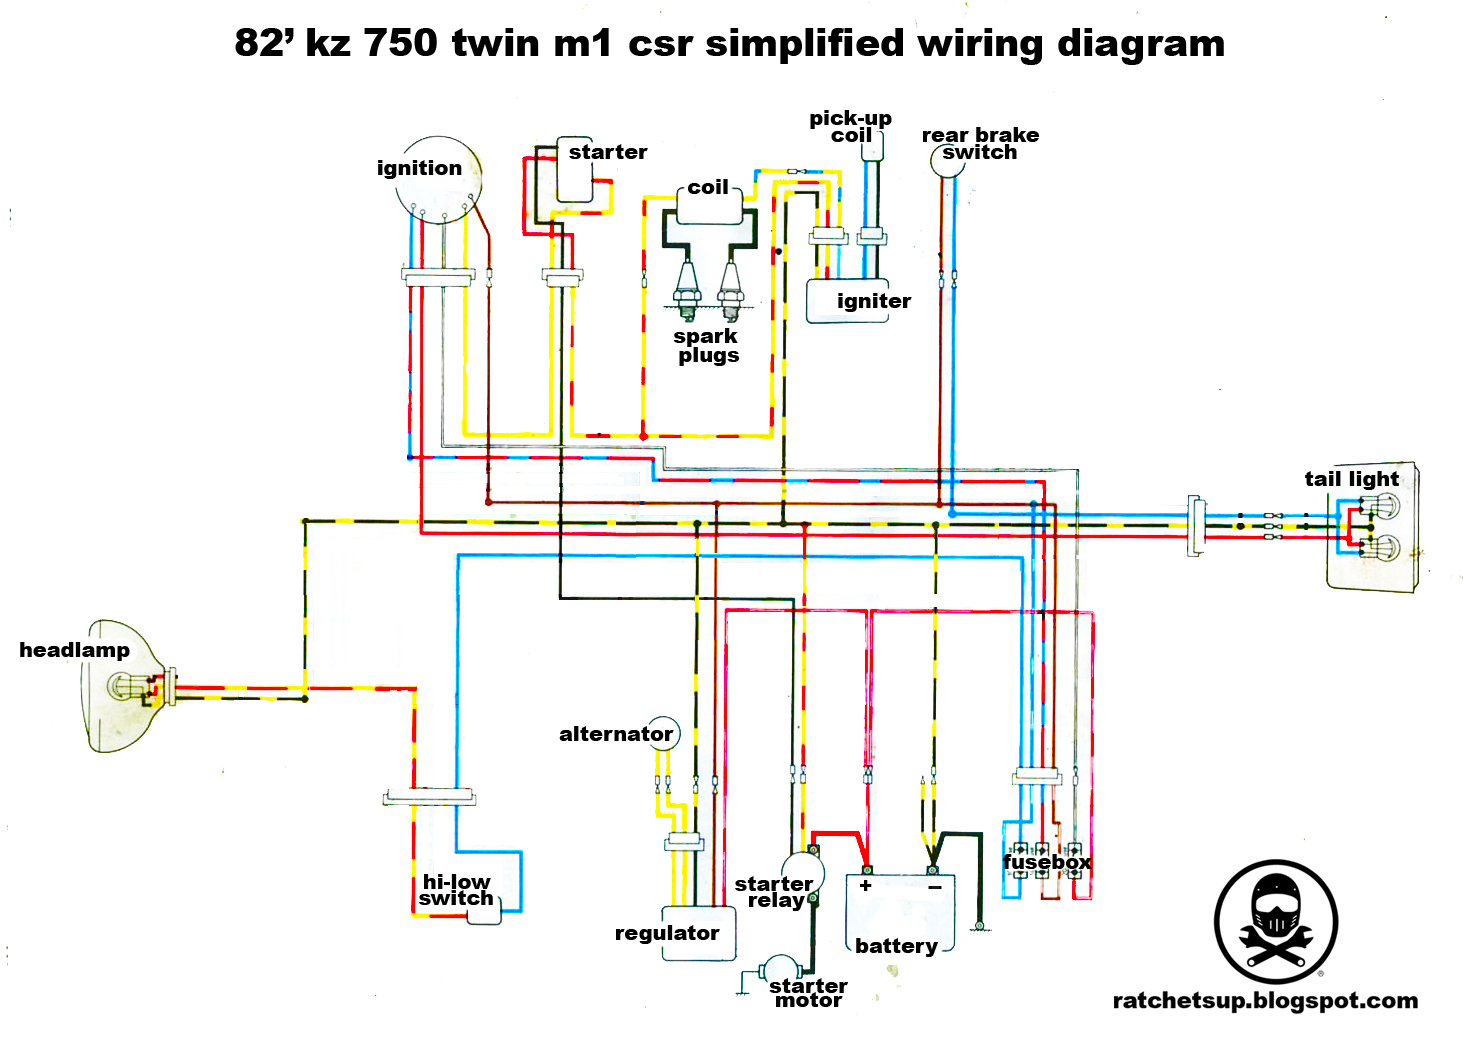 kz750+simple+diagram simplified minimal kz750 csr wiring diagram kzrider forum 1980 kawasaki kz750 wiring diagram at aneh.co